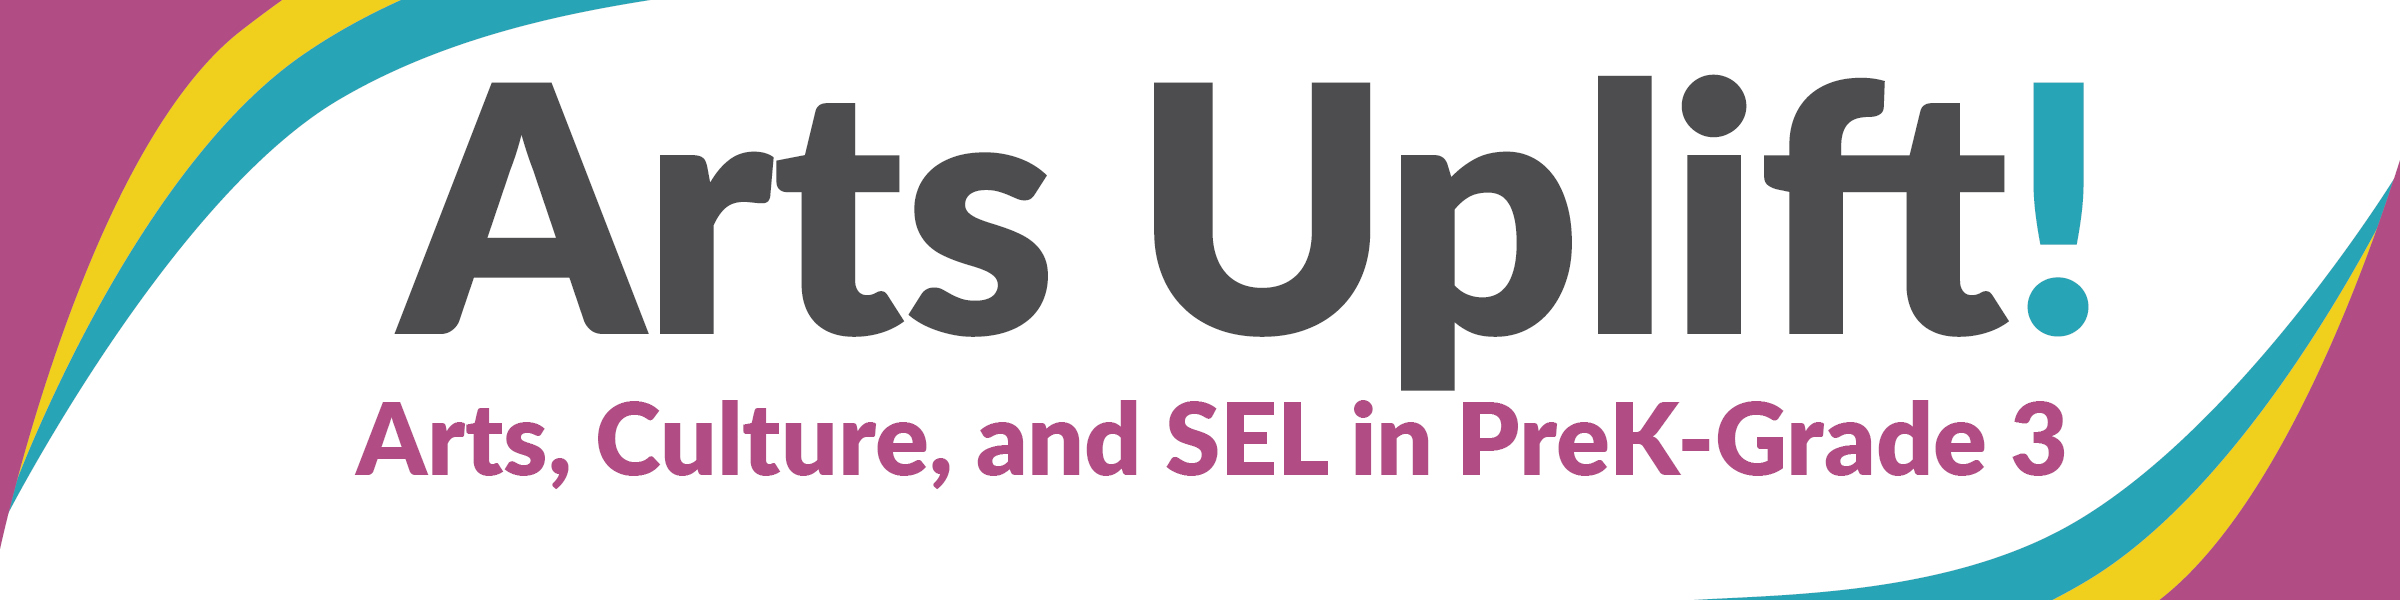 Colorful swoops surround text that reads: Arts Uplift! Arts, Culture, and SEL in PreK-Grade 3